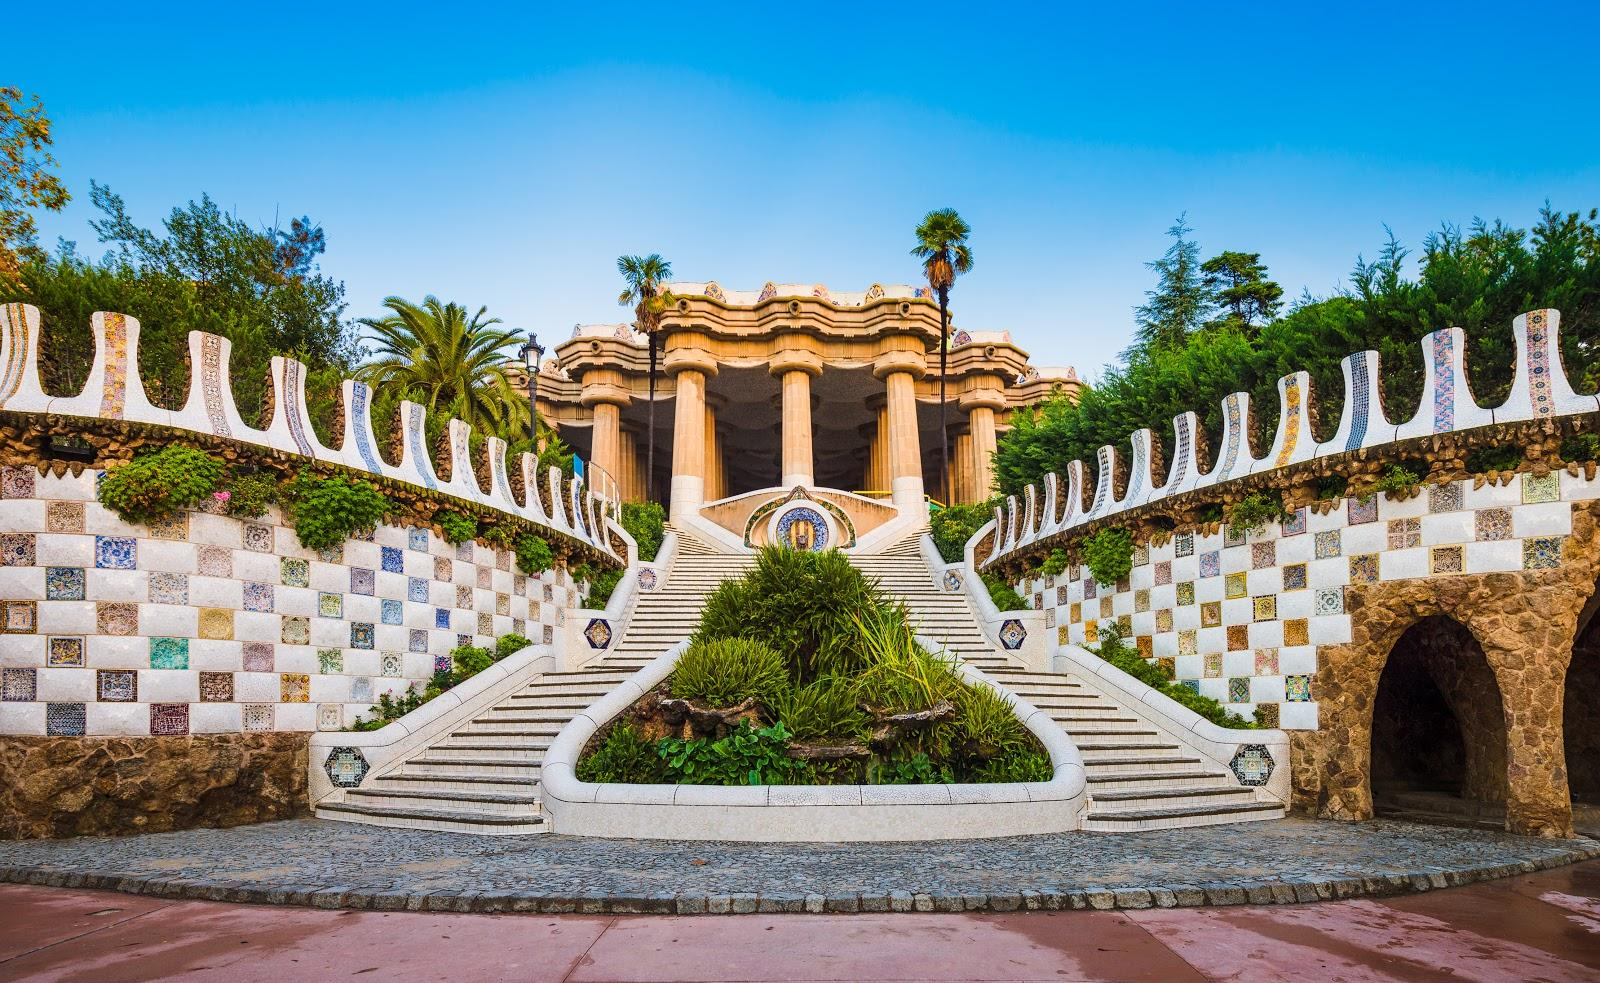 A picture of the Dragon Stairway, one of the top Park Guell highlights.